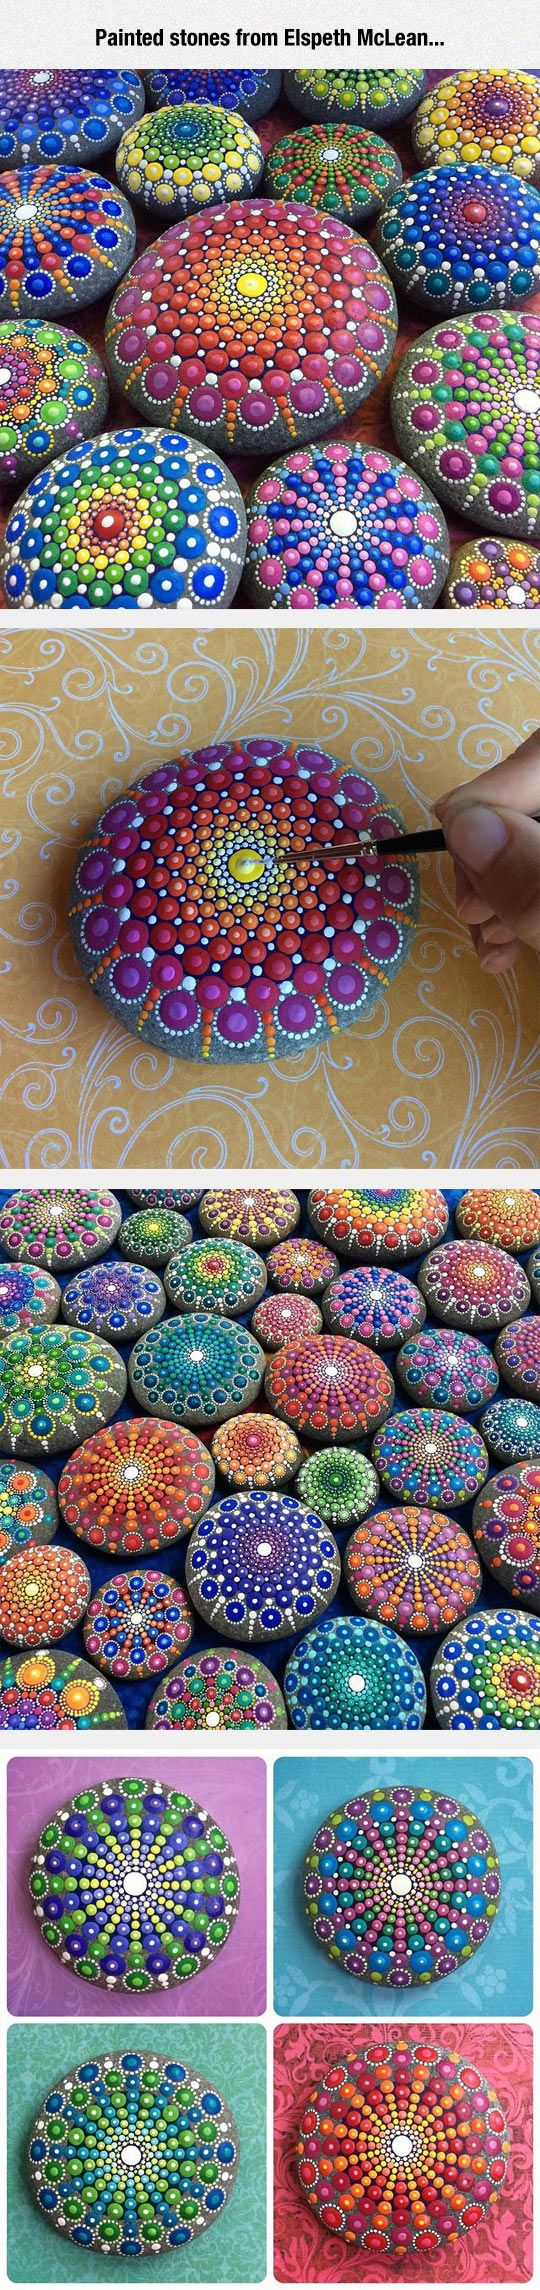 painted stones by elspeth mclean | cool-painted-stones-Elspeth-McLean: